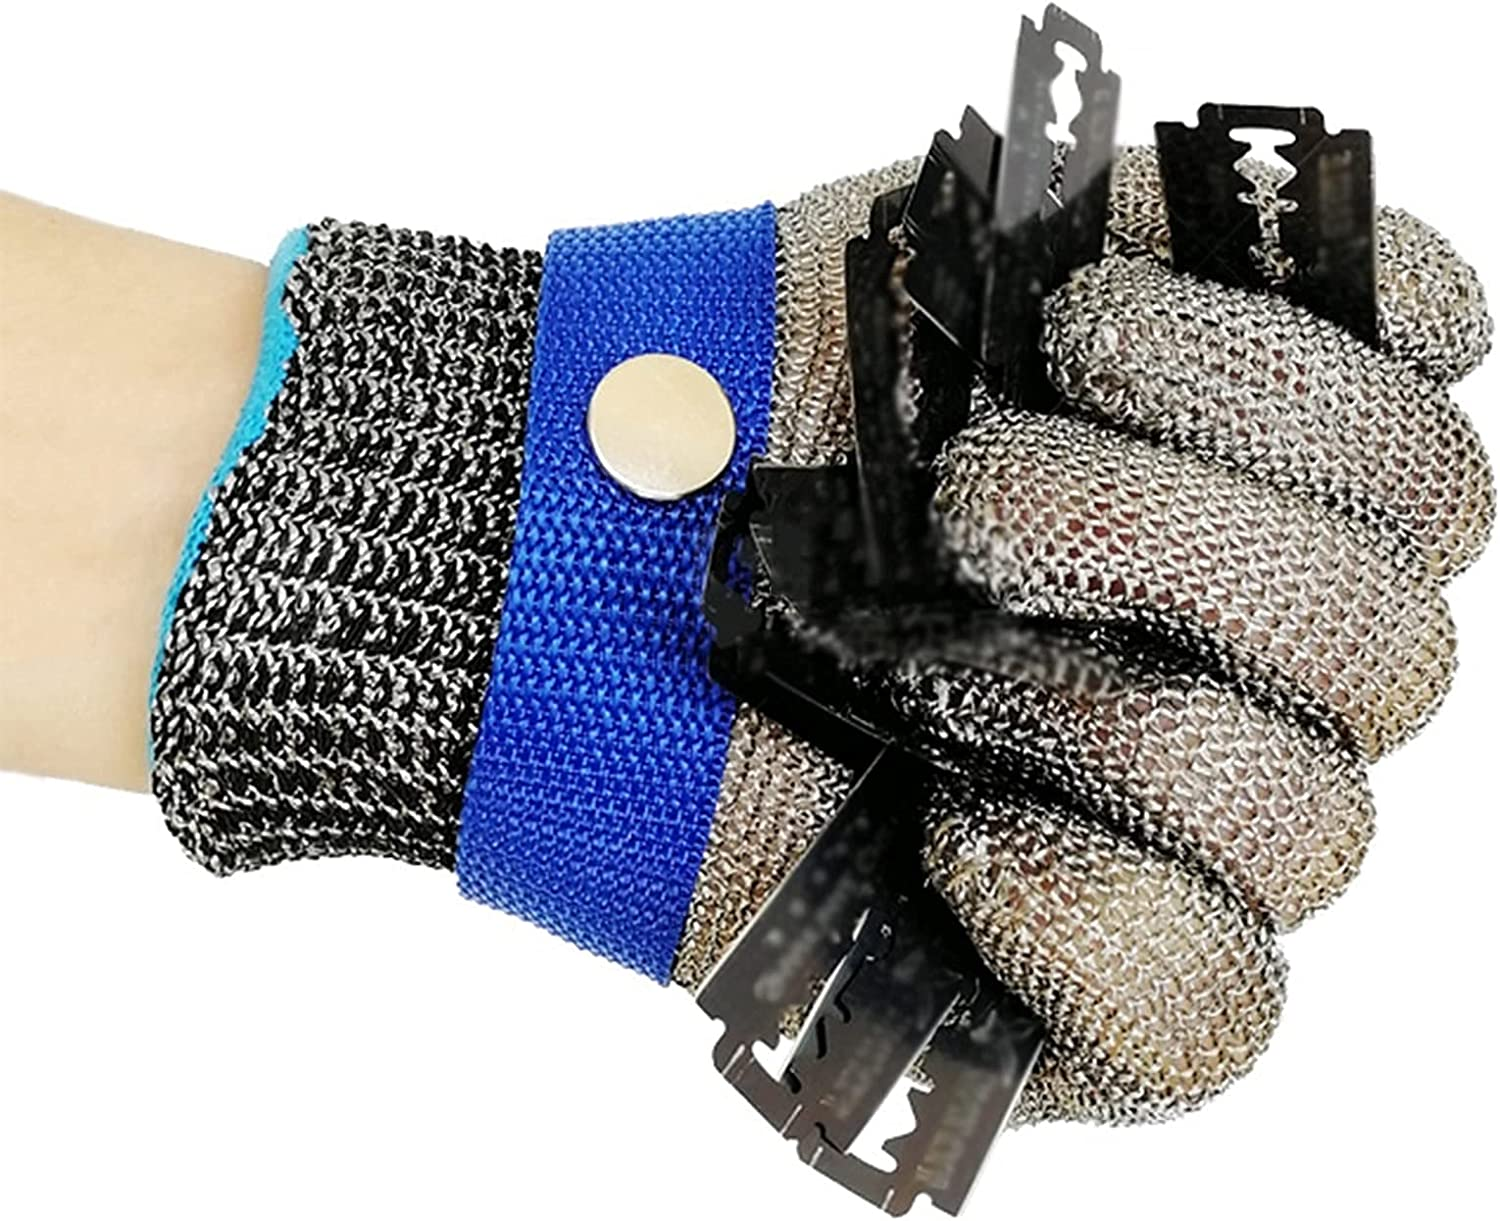 Anti-Cut Gloves Cut Resistant - Stainless Steel Cheap SALE Start Max 74% OFF Mes 2pcs